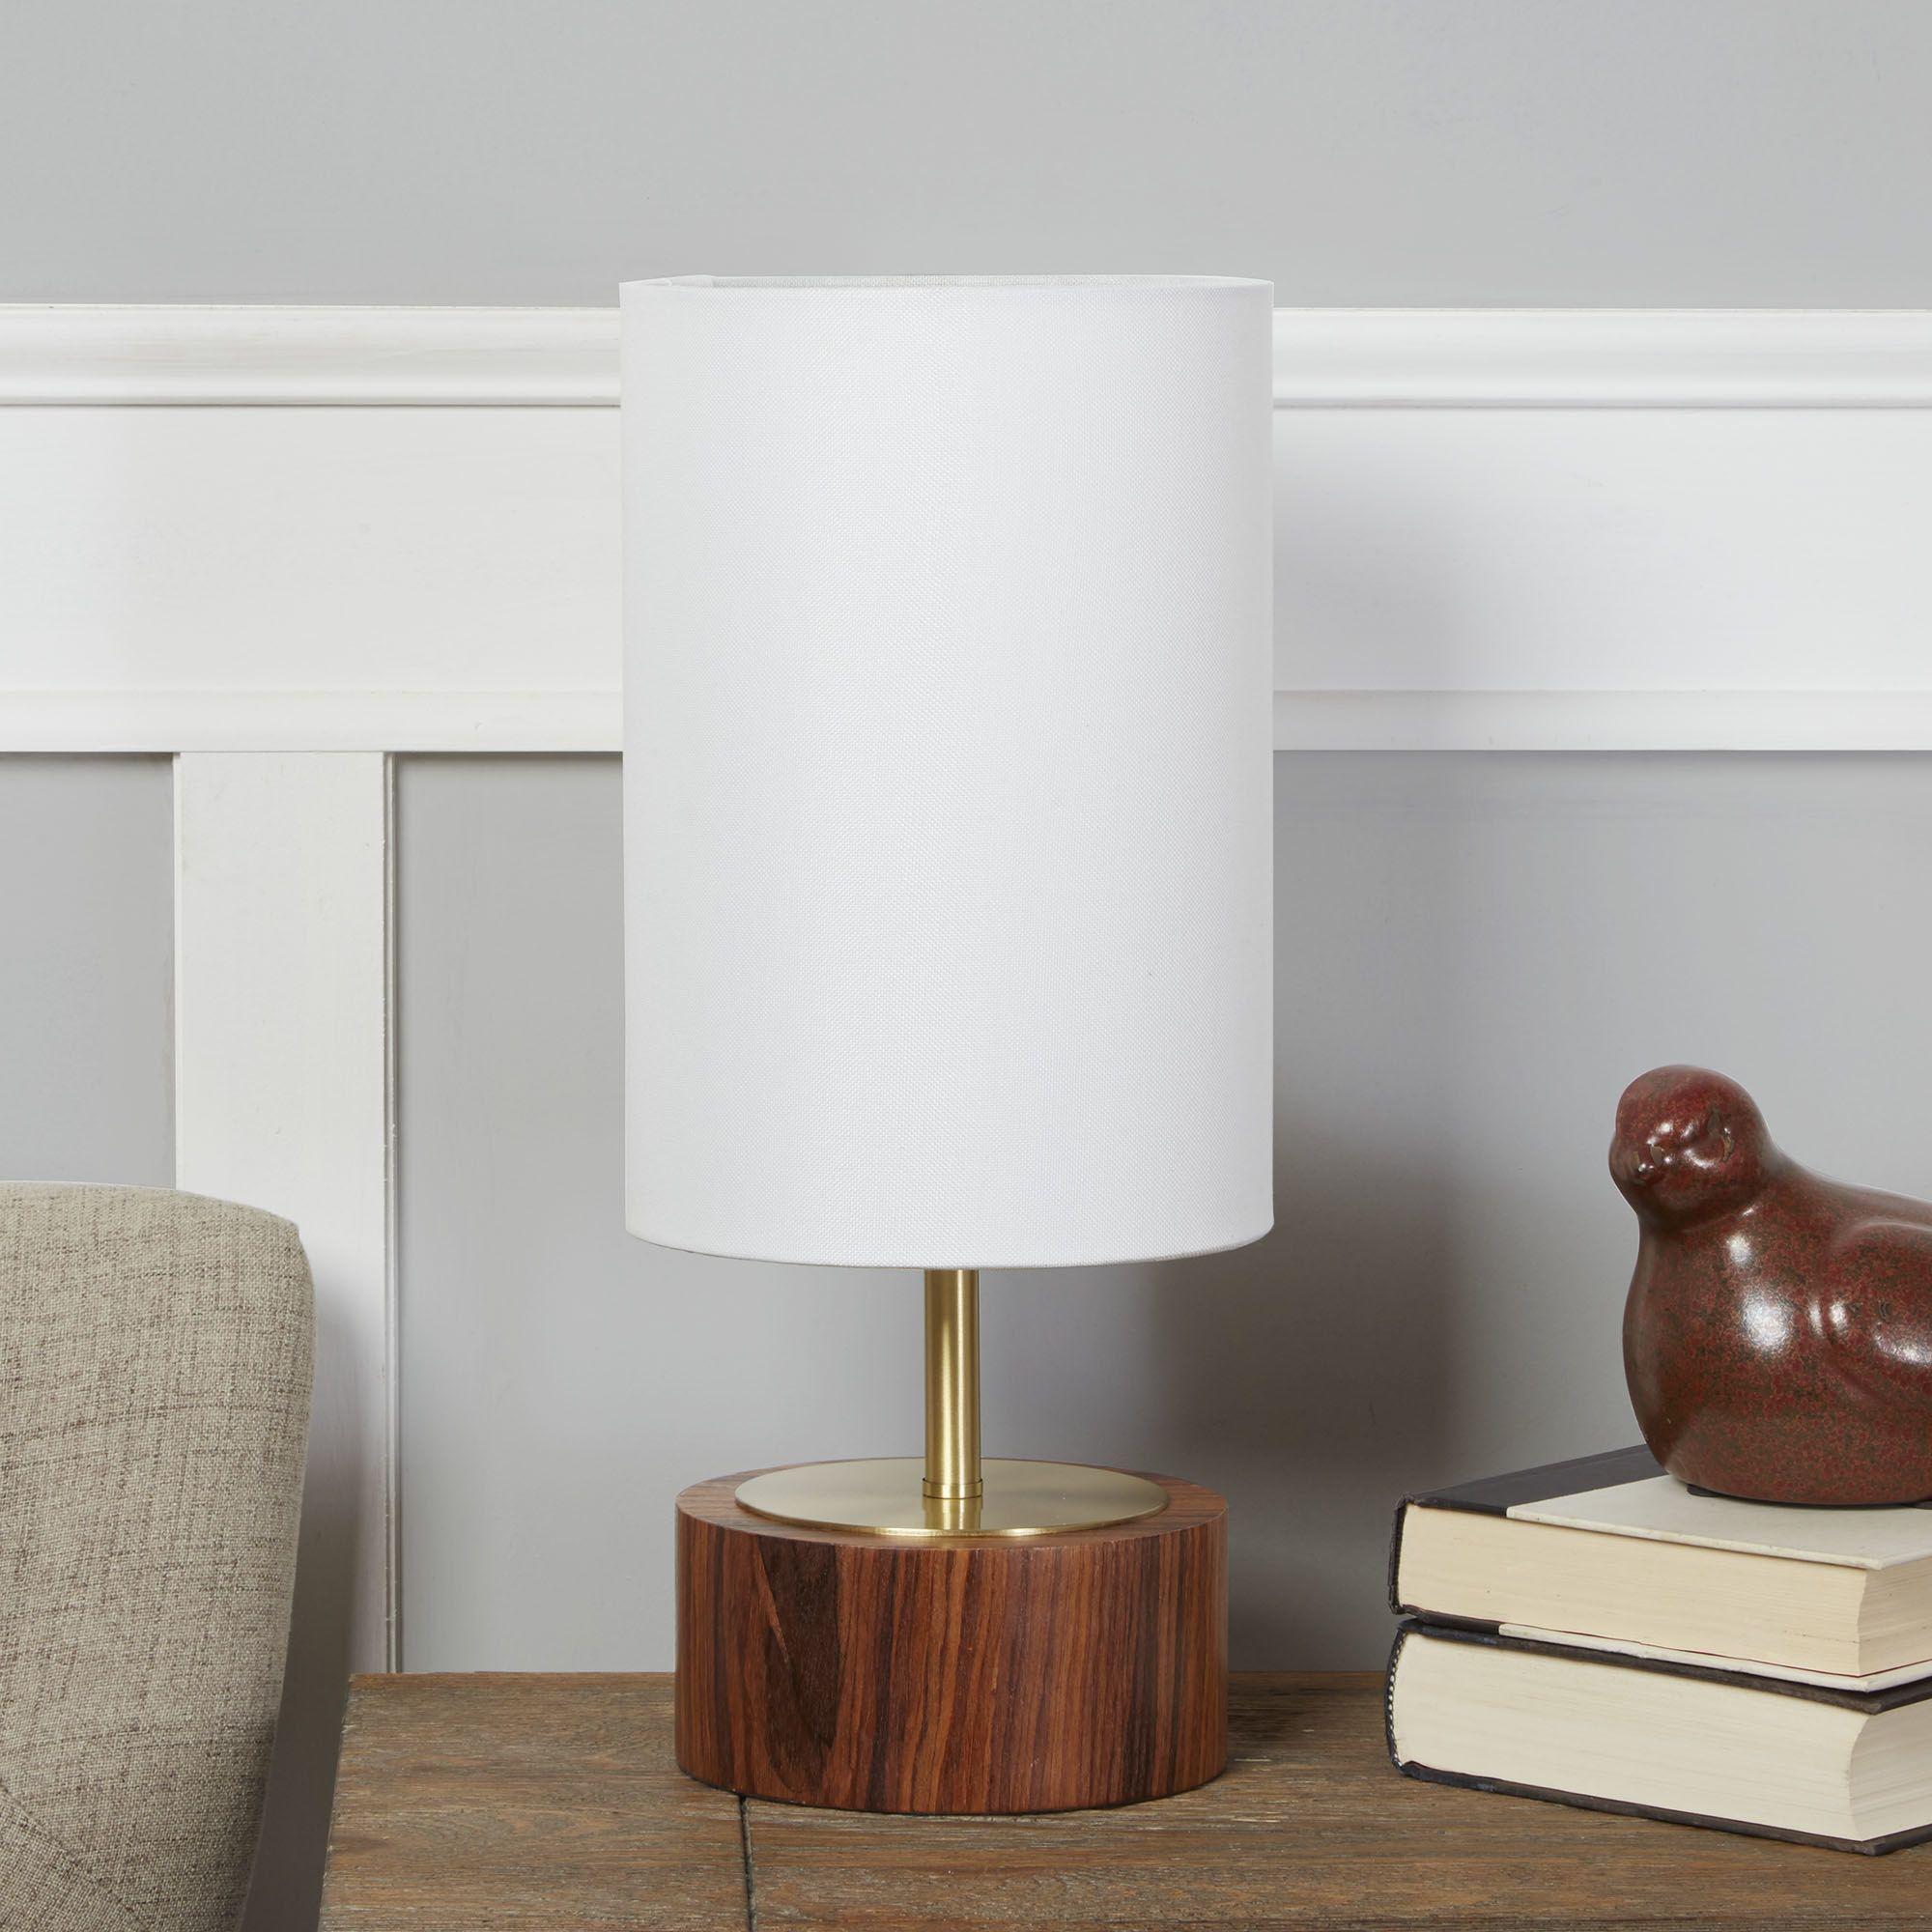 23 Things From Walmart To Help Refresh Your Bedroom In 2020 Touch Table Lamps Table Lamp Touch Table